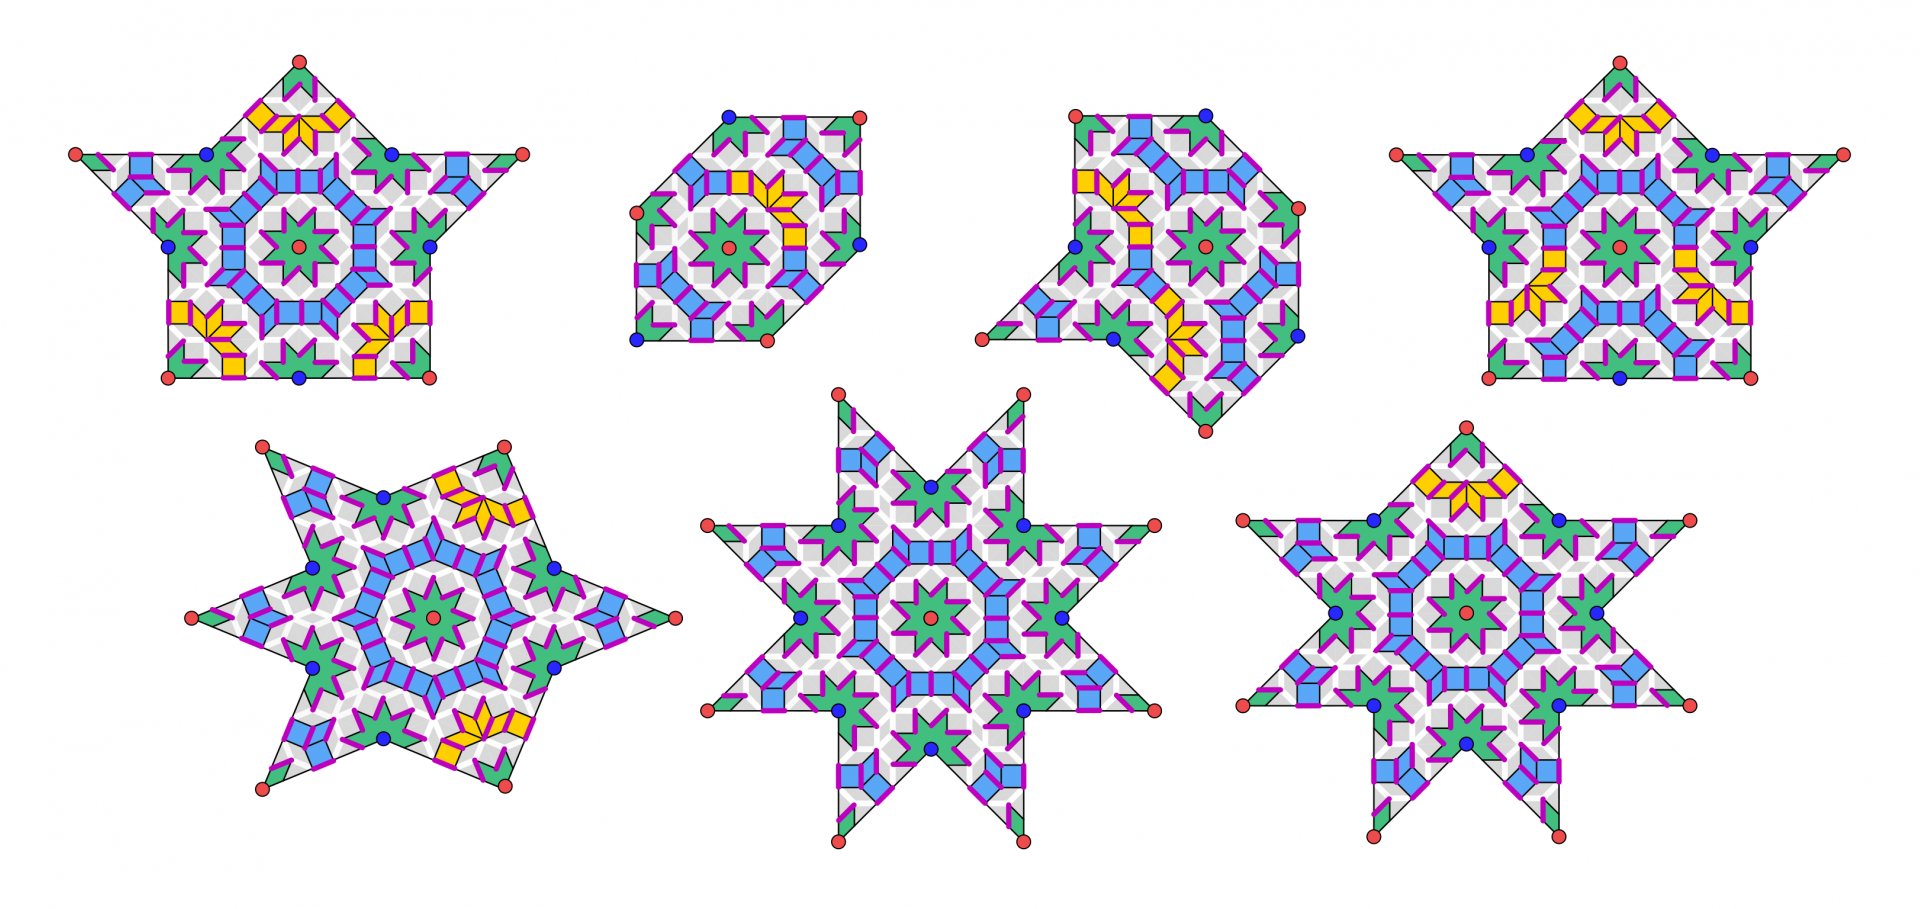 Images of dimers on quasiperiodic Amman-Beenker tiling.